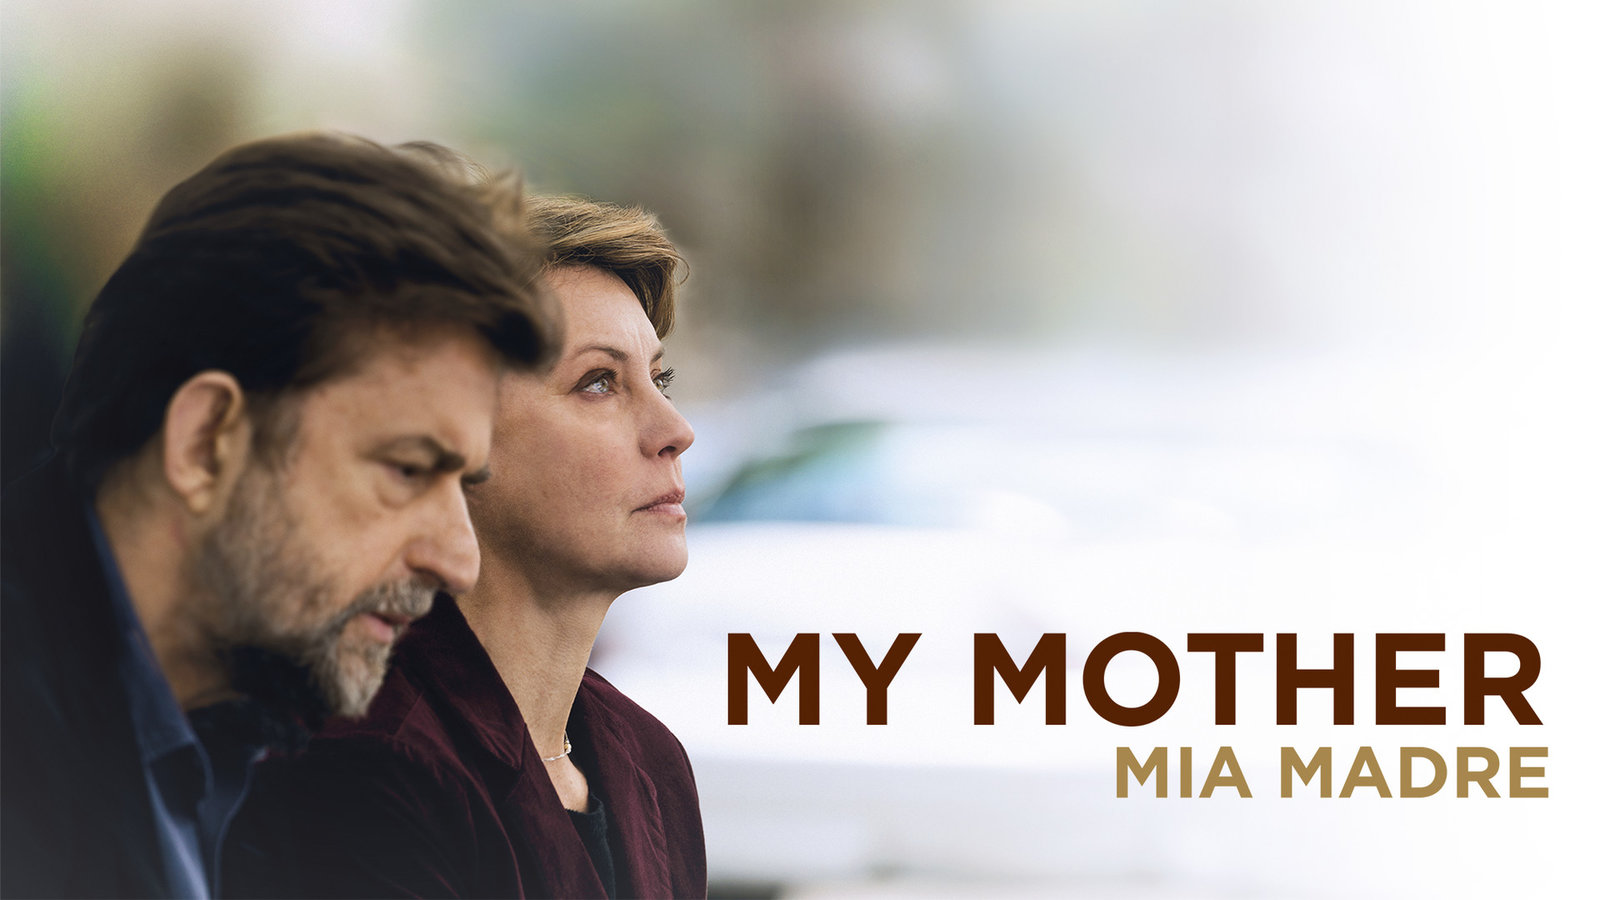 My Mother - Mia Madre